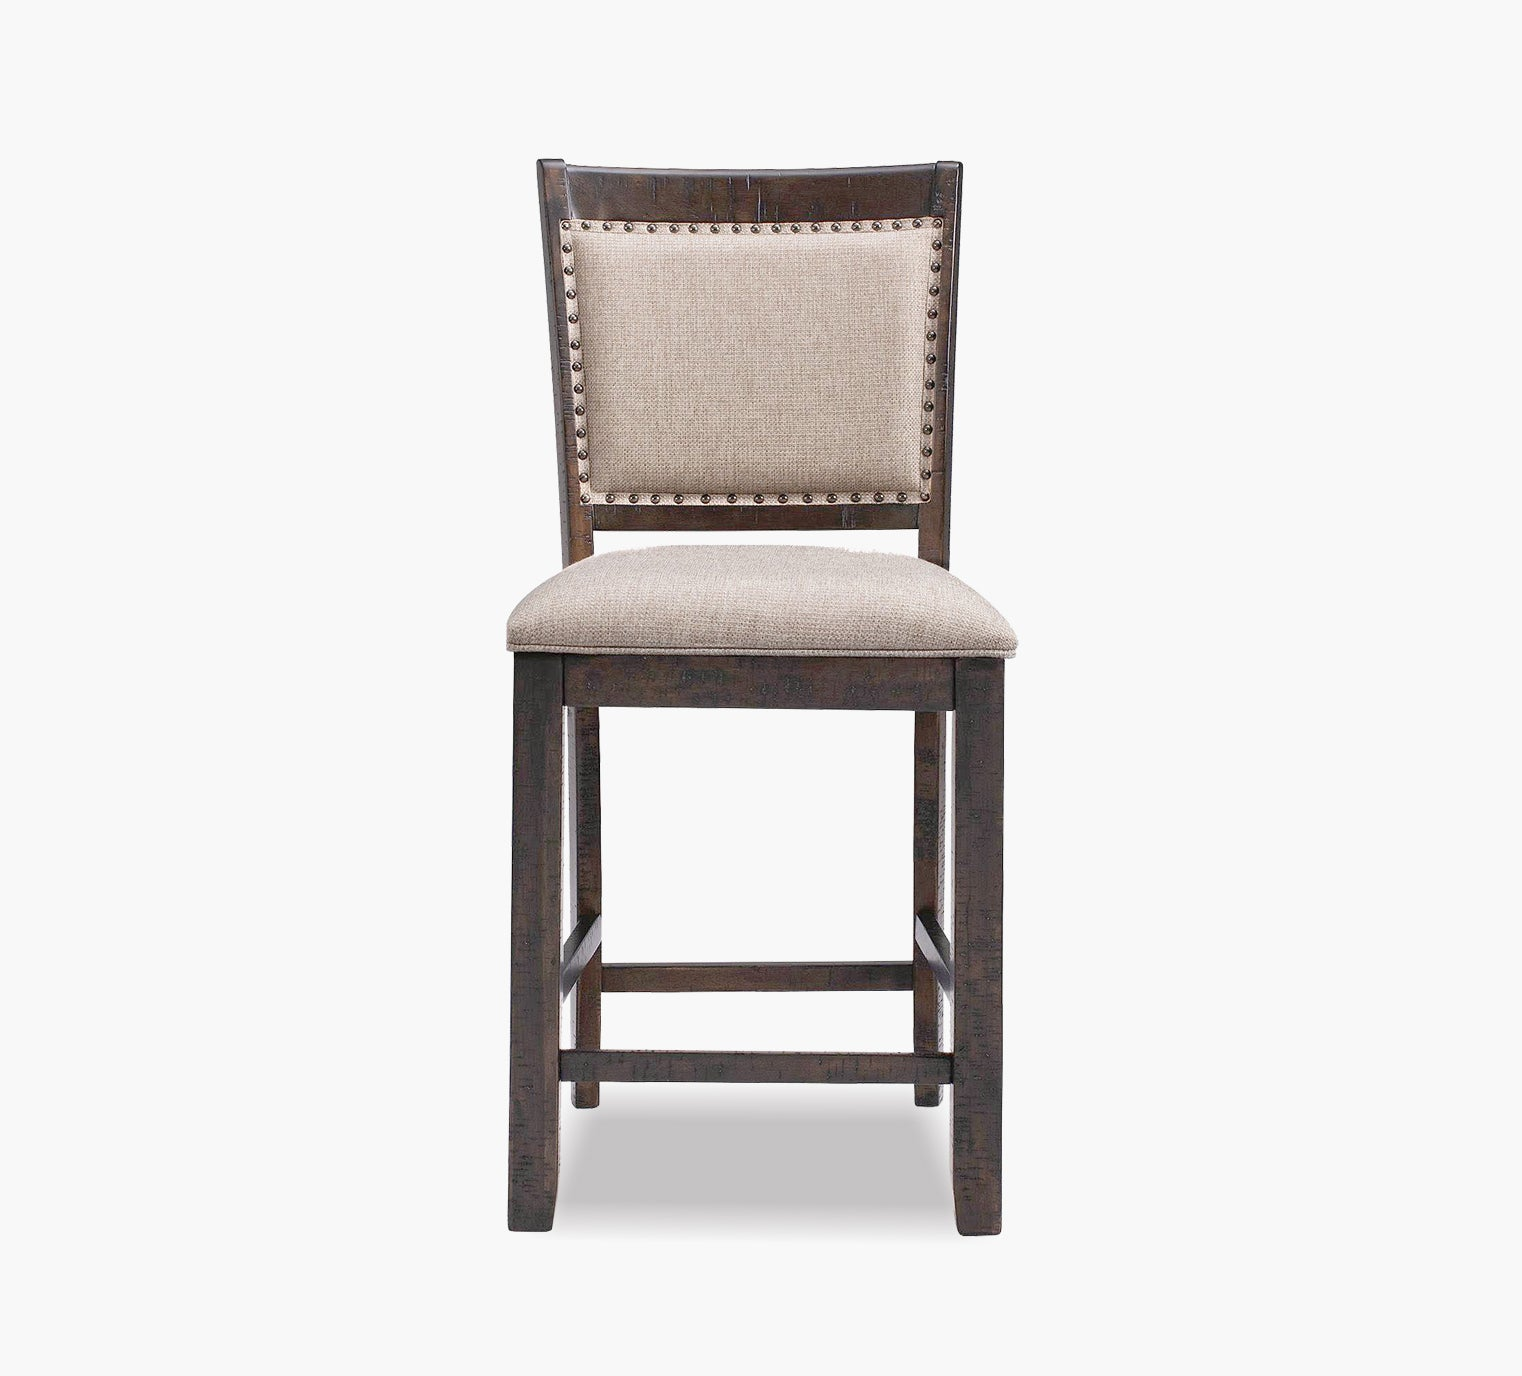 Tremendous Lucca Counter Stool Upholstered Kanes Furniture Gmtry Best Dining Table And Chair Ideas Images Gmtryco